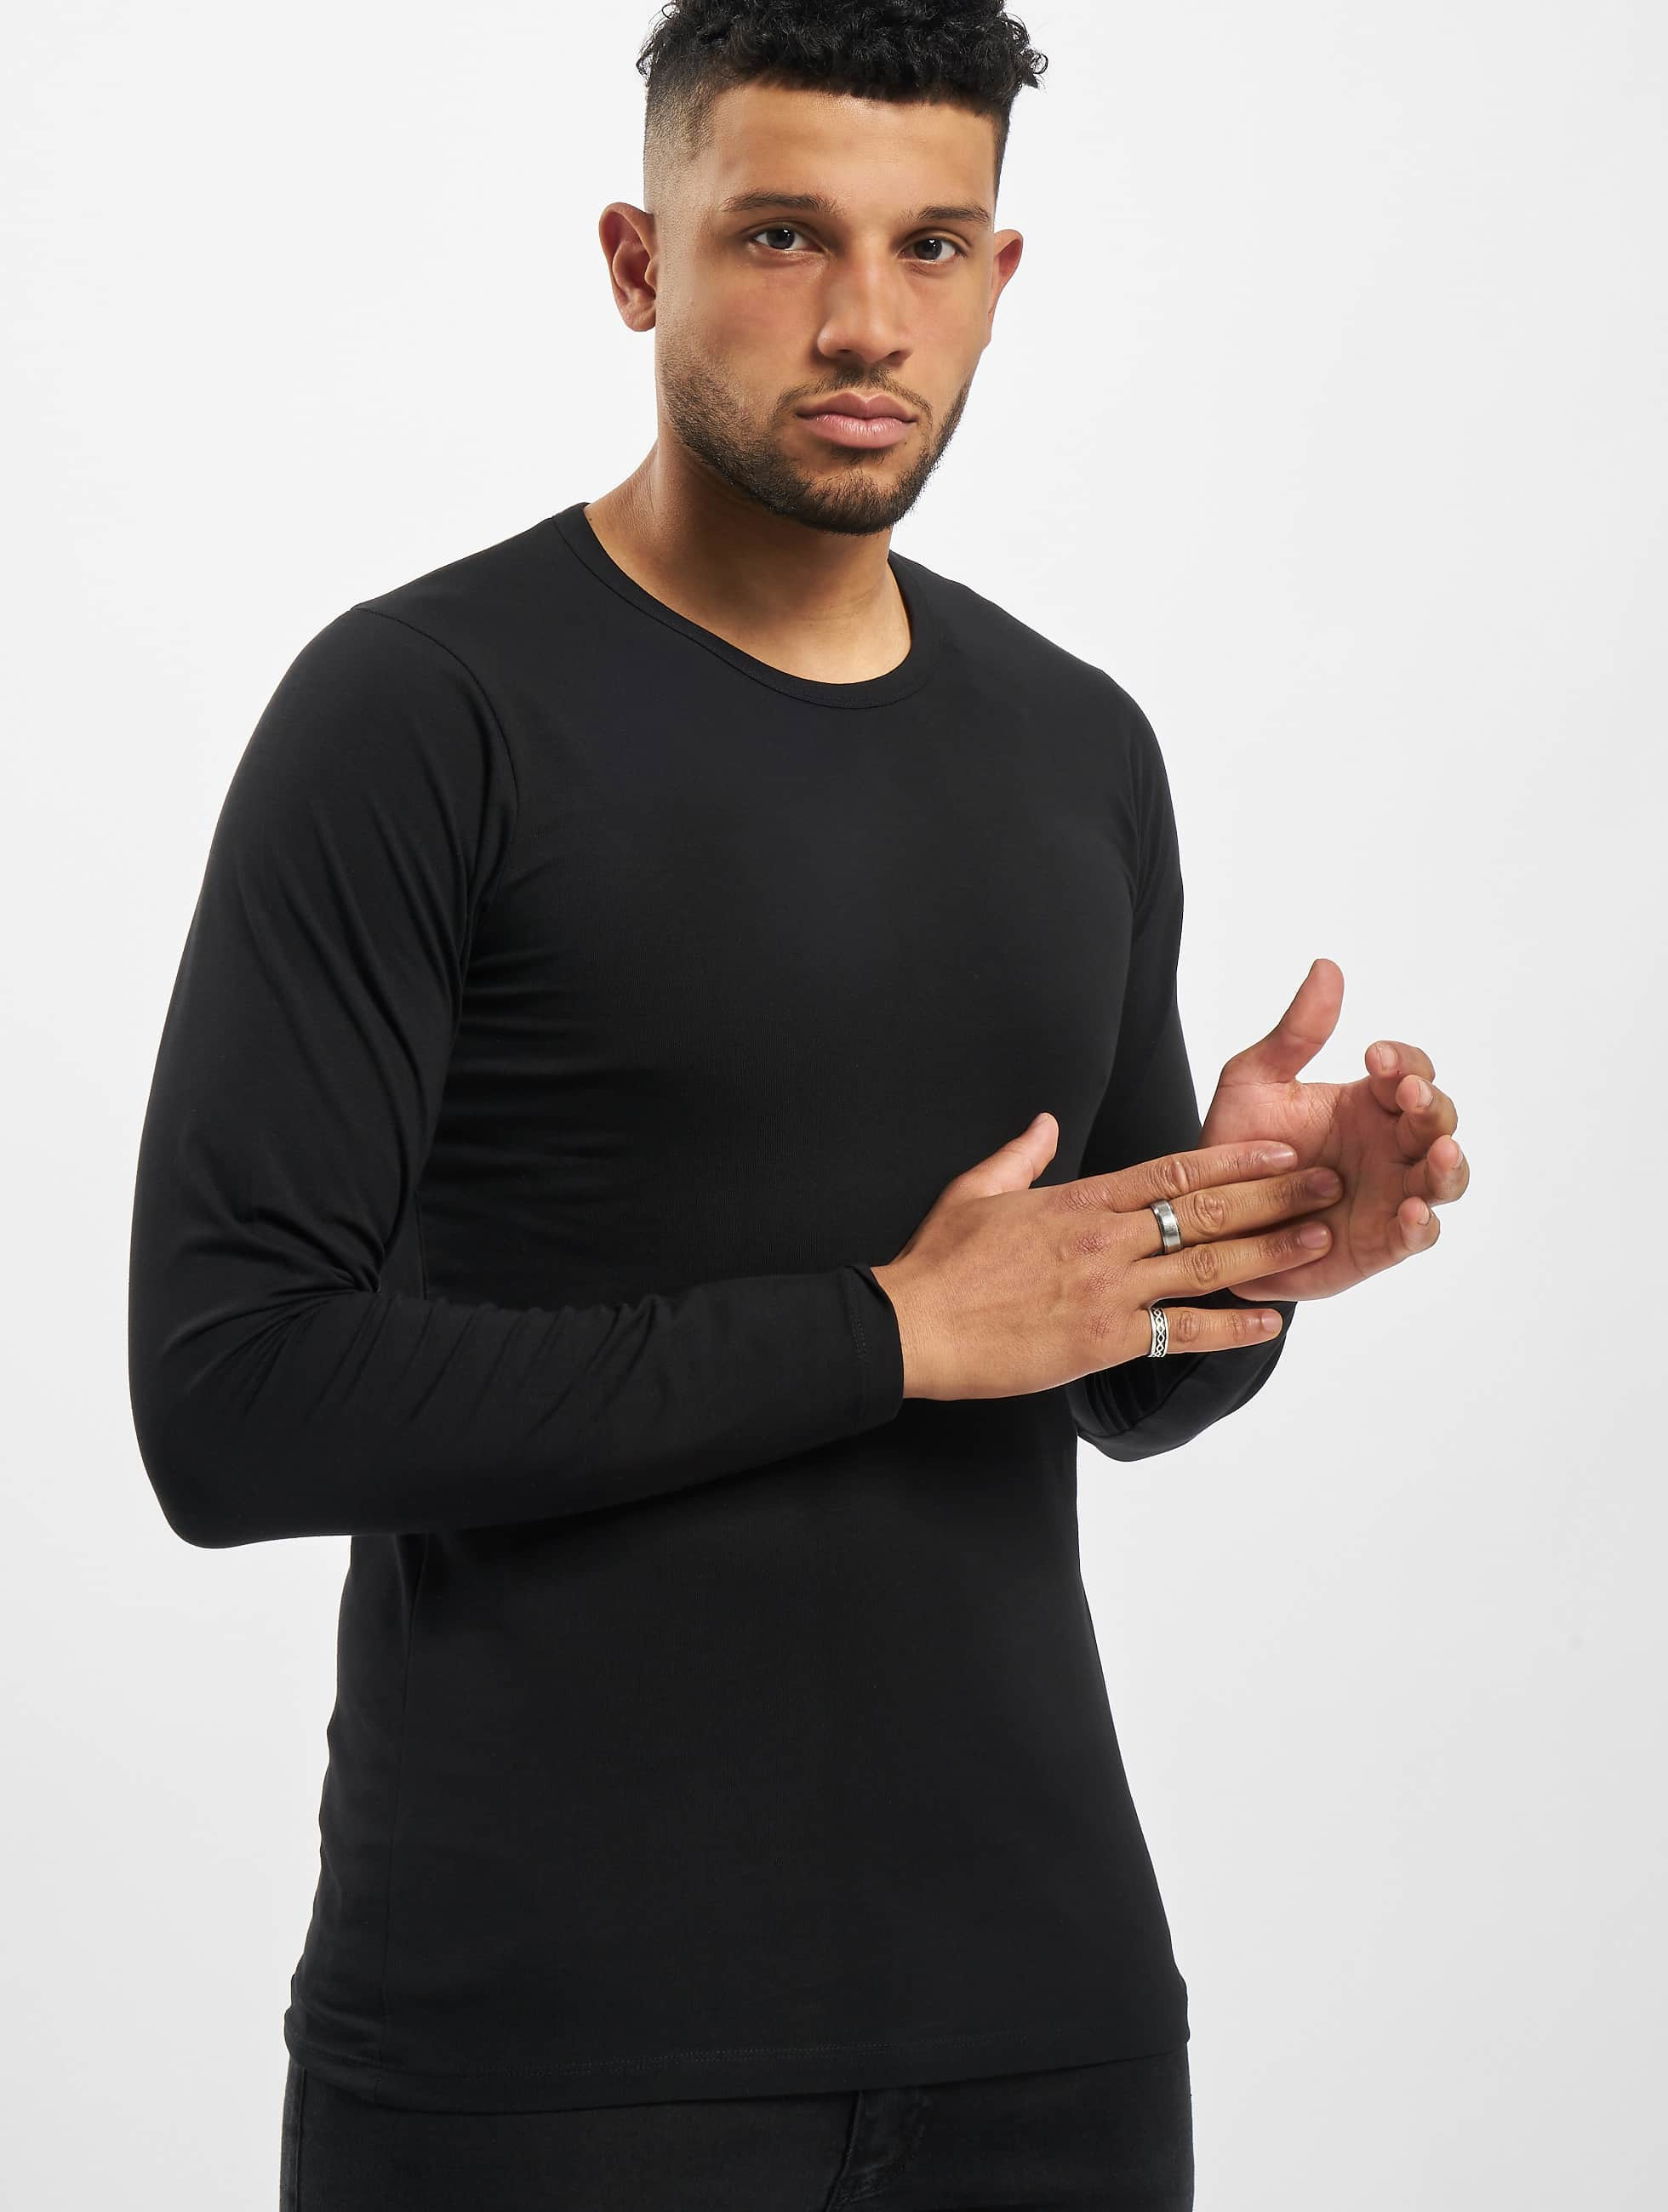 Long Sleeve T-Shirts for Men. Shop men's long sleeve t-shirts at Zumiez, carrying long sleeve tees from the top brands in skate and street wear. Free shipping to any Zumiez store.